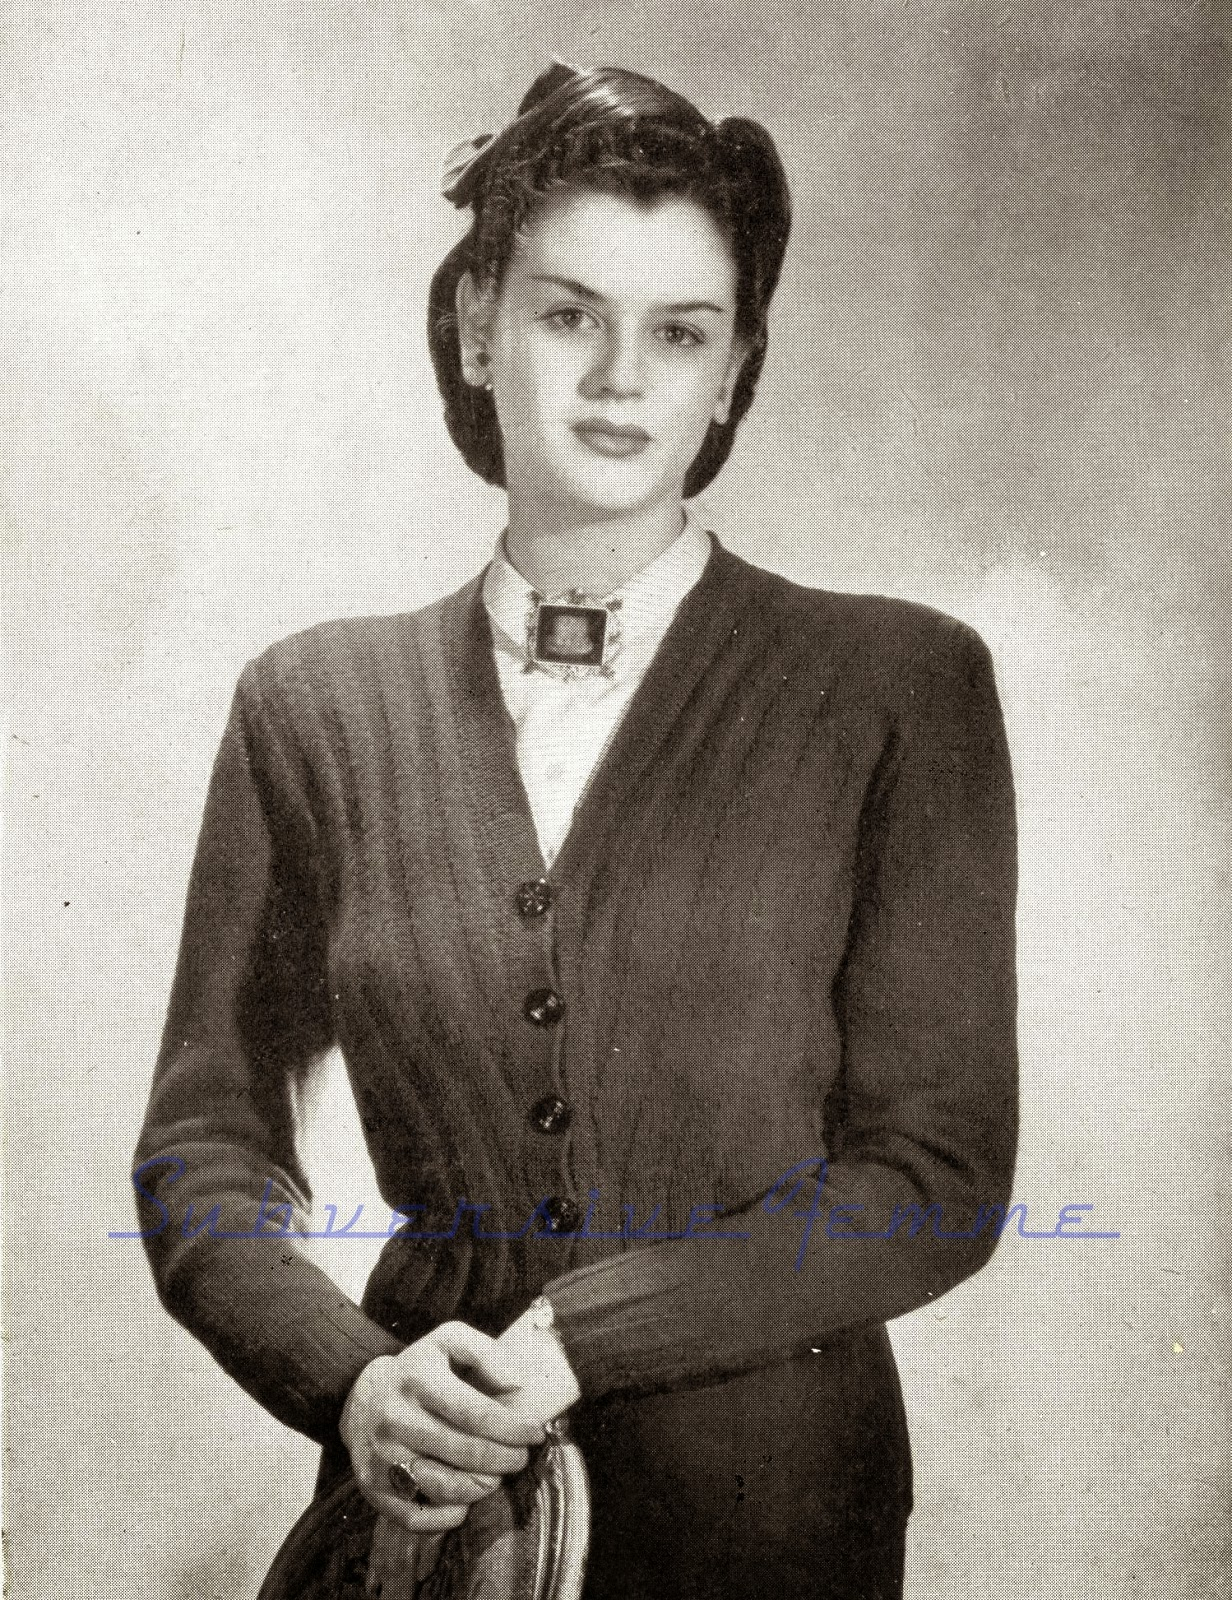 1940 Knitting Patterns Free : The Vintage Pattern Files: 1940s Knitting - Diagonal Cropped Cardigan